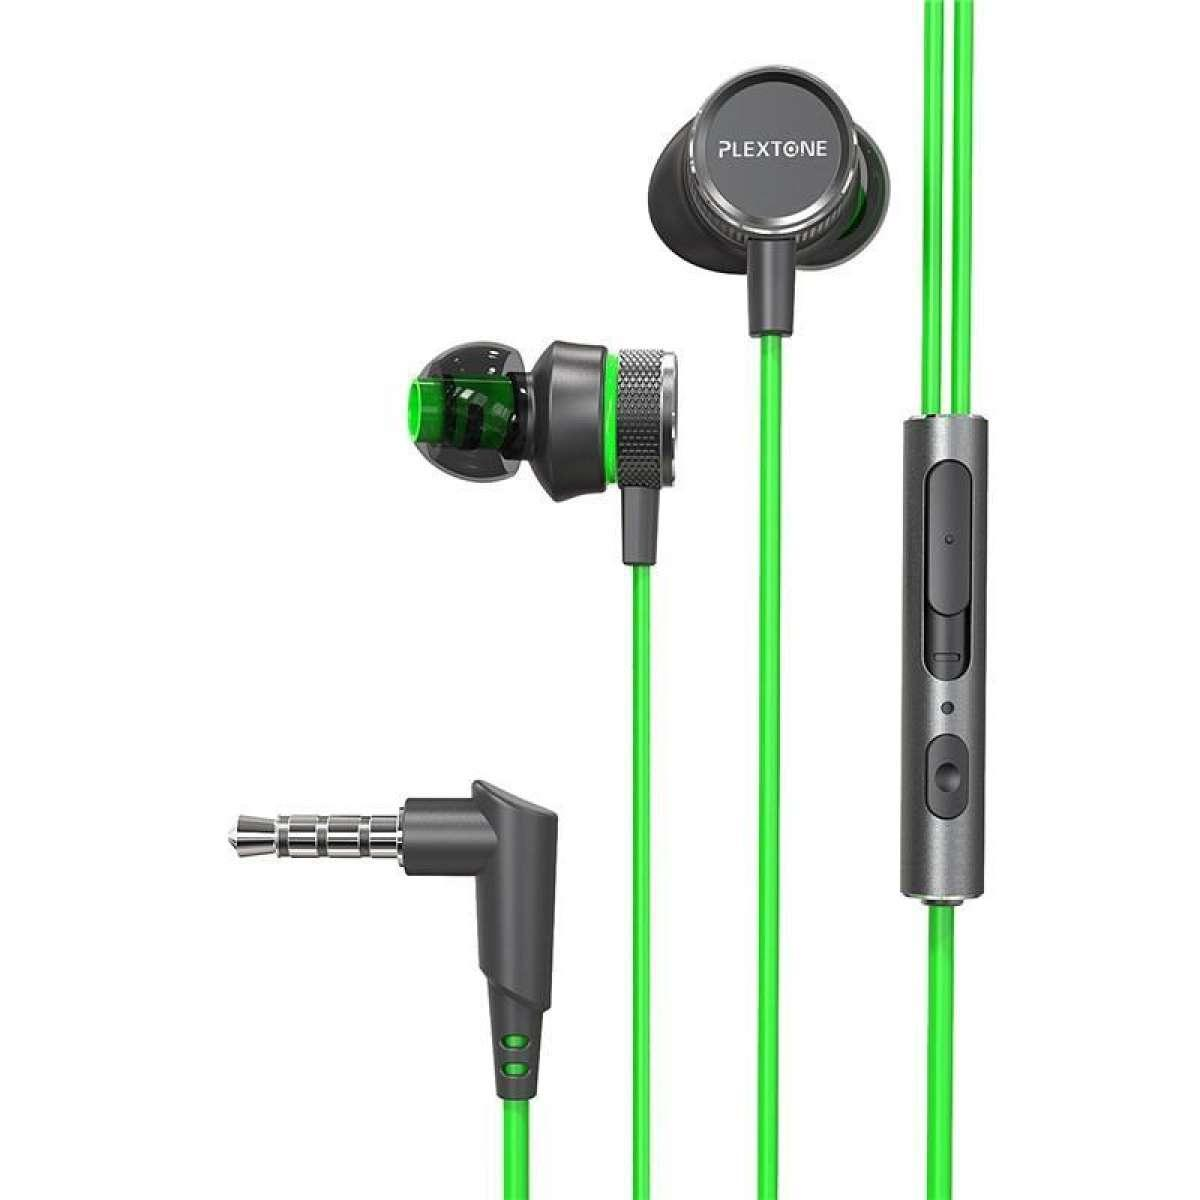 PLEXTONE G15 Earphone 3.5mm Magnetic Stereo Gaming Earohone-Green